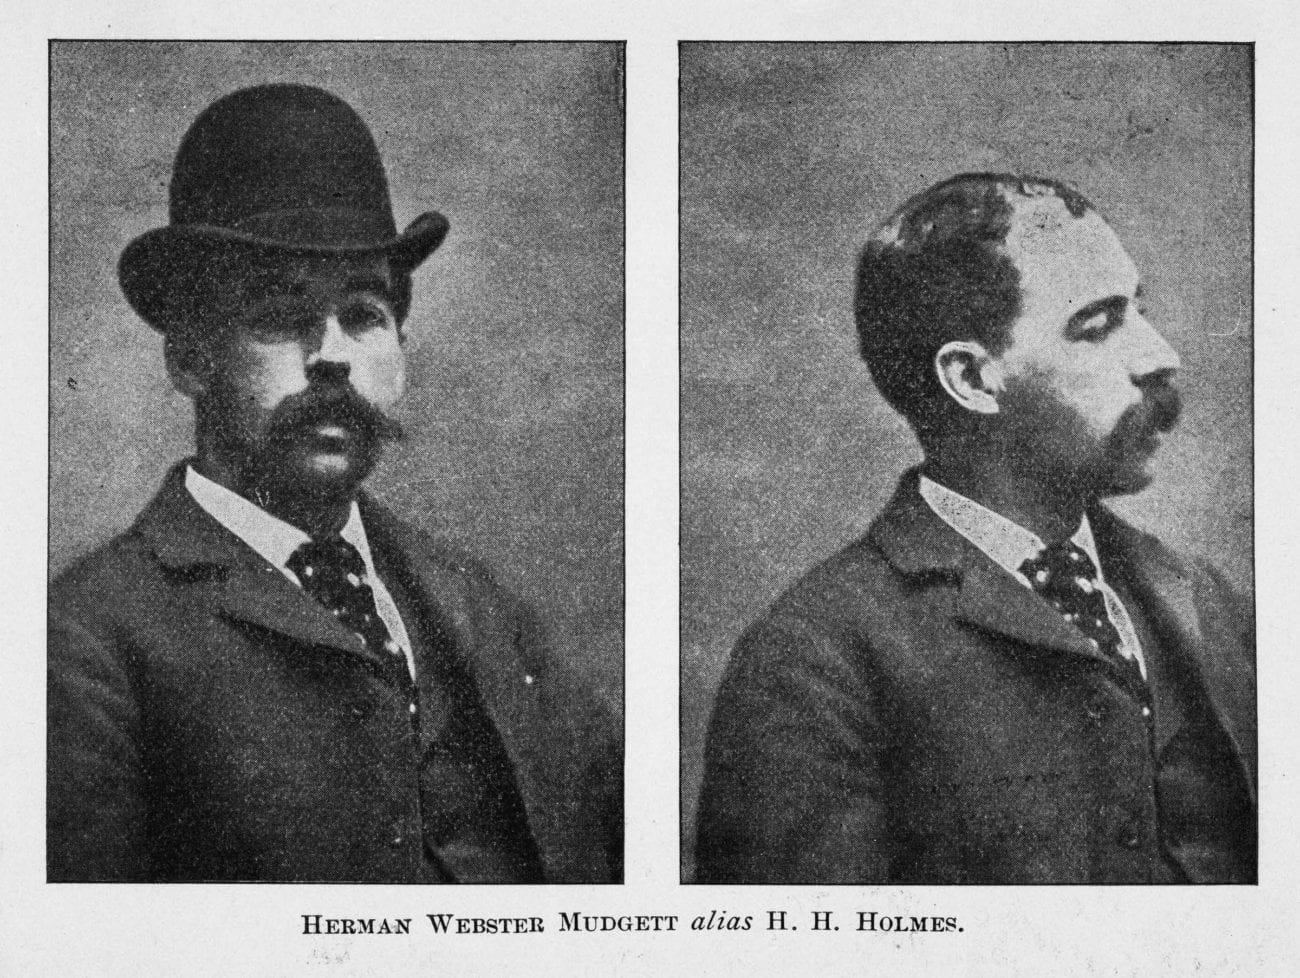 The first American serial killer is getting a new Hulu series from Scorsese and Leo DiCaprio. But with so much misinformation, who truly was H. H. Holmes?